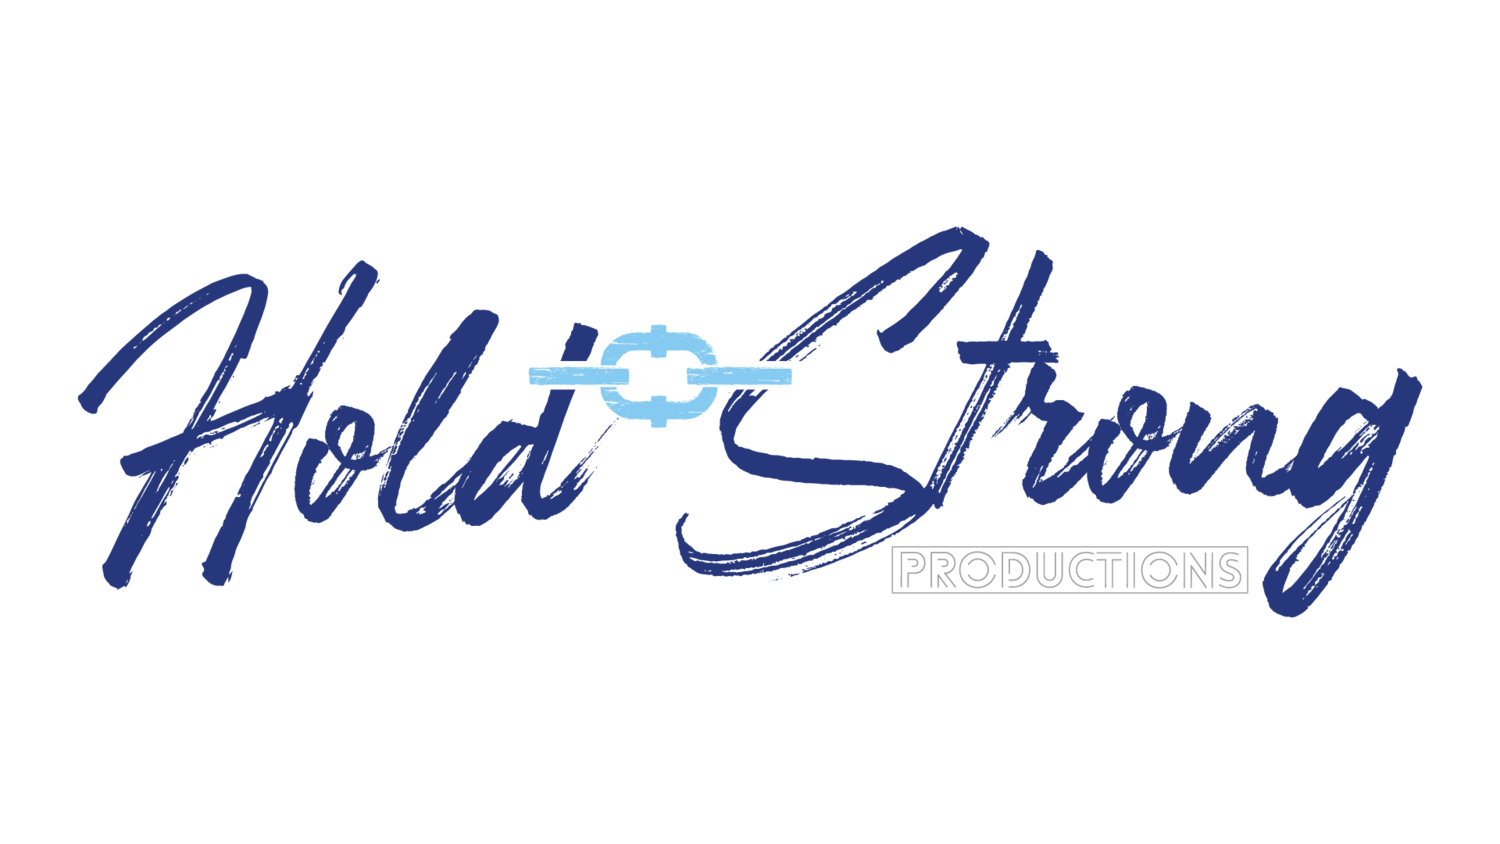 Hold Strong Productions